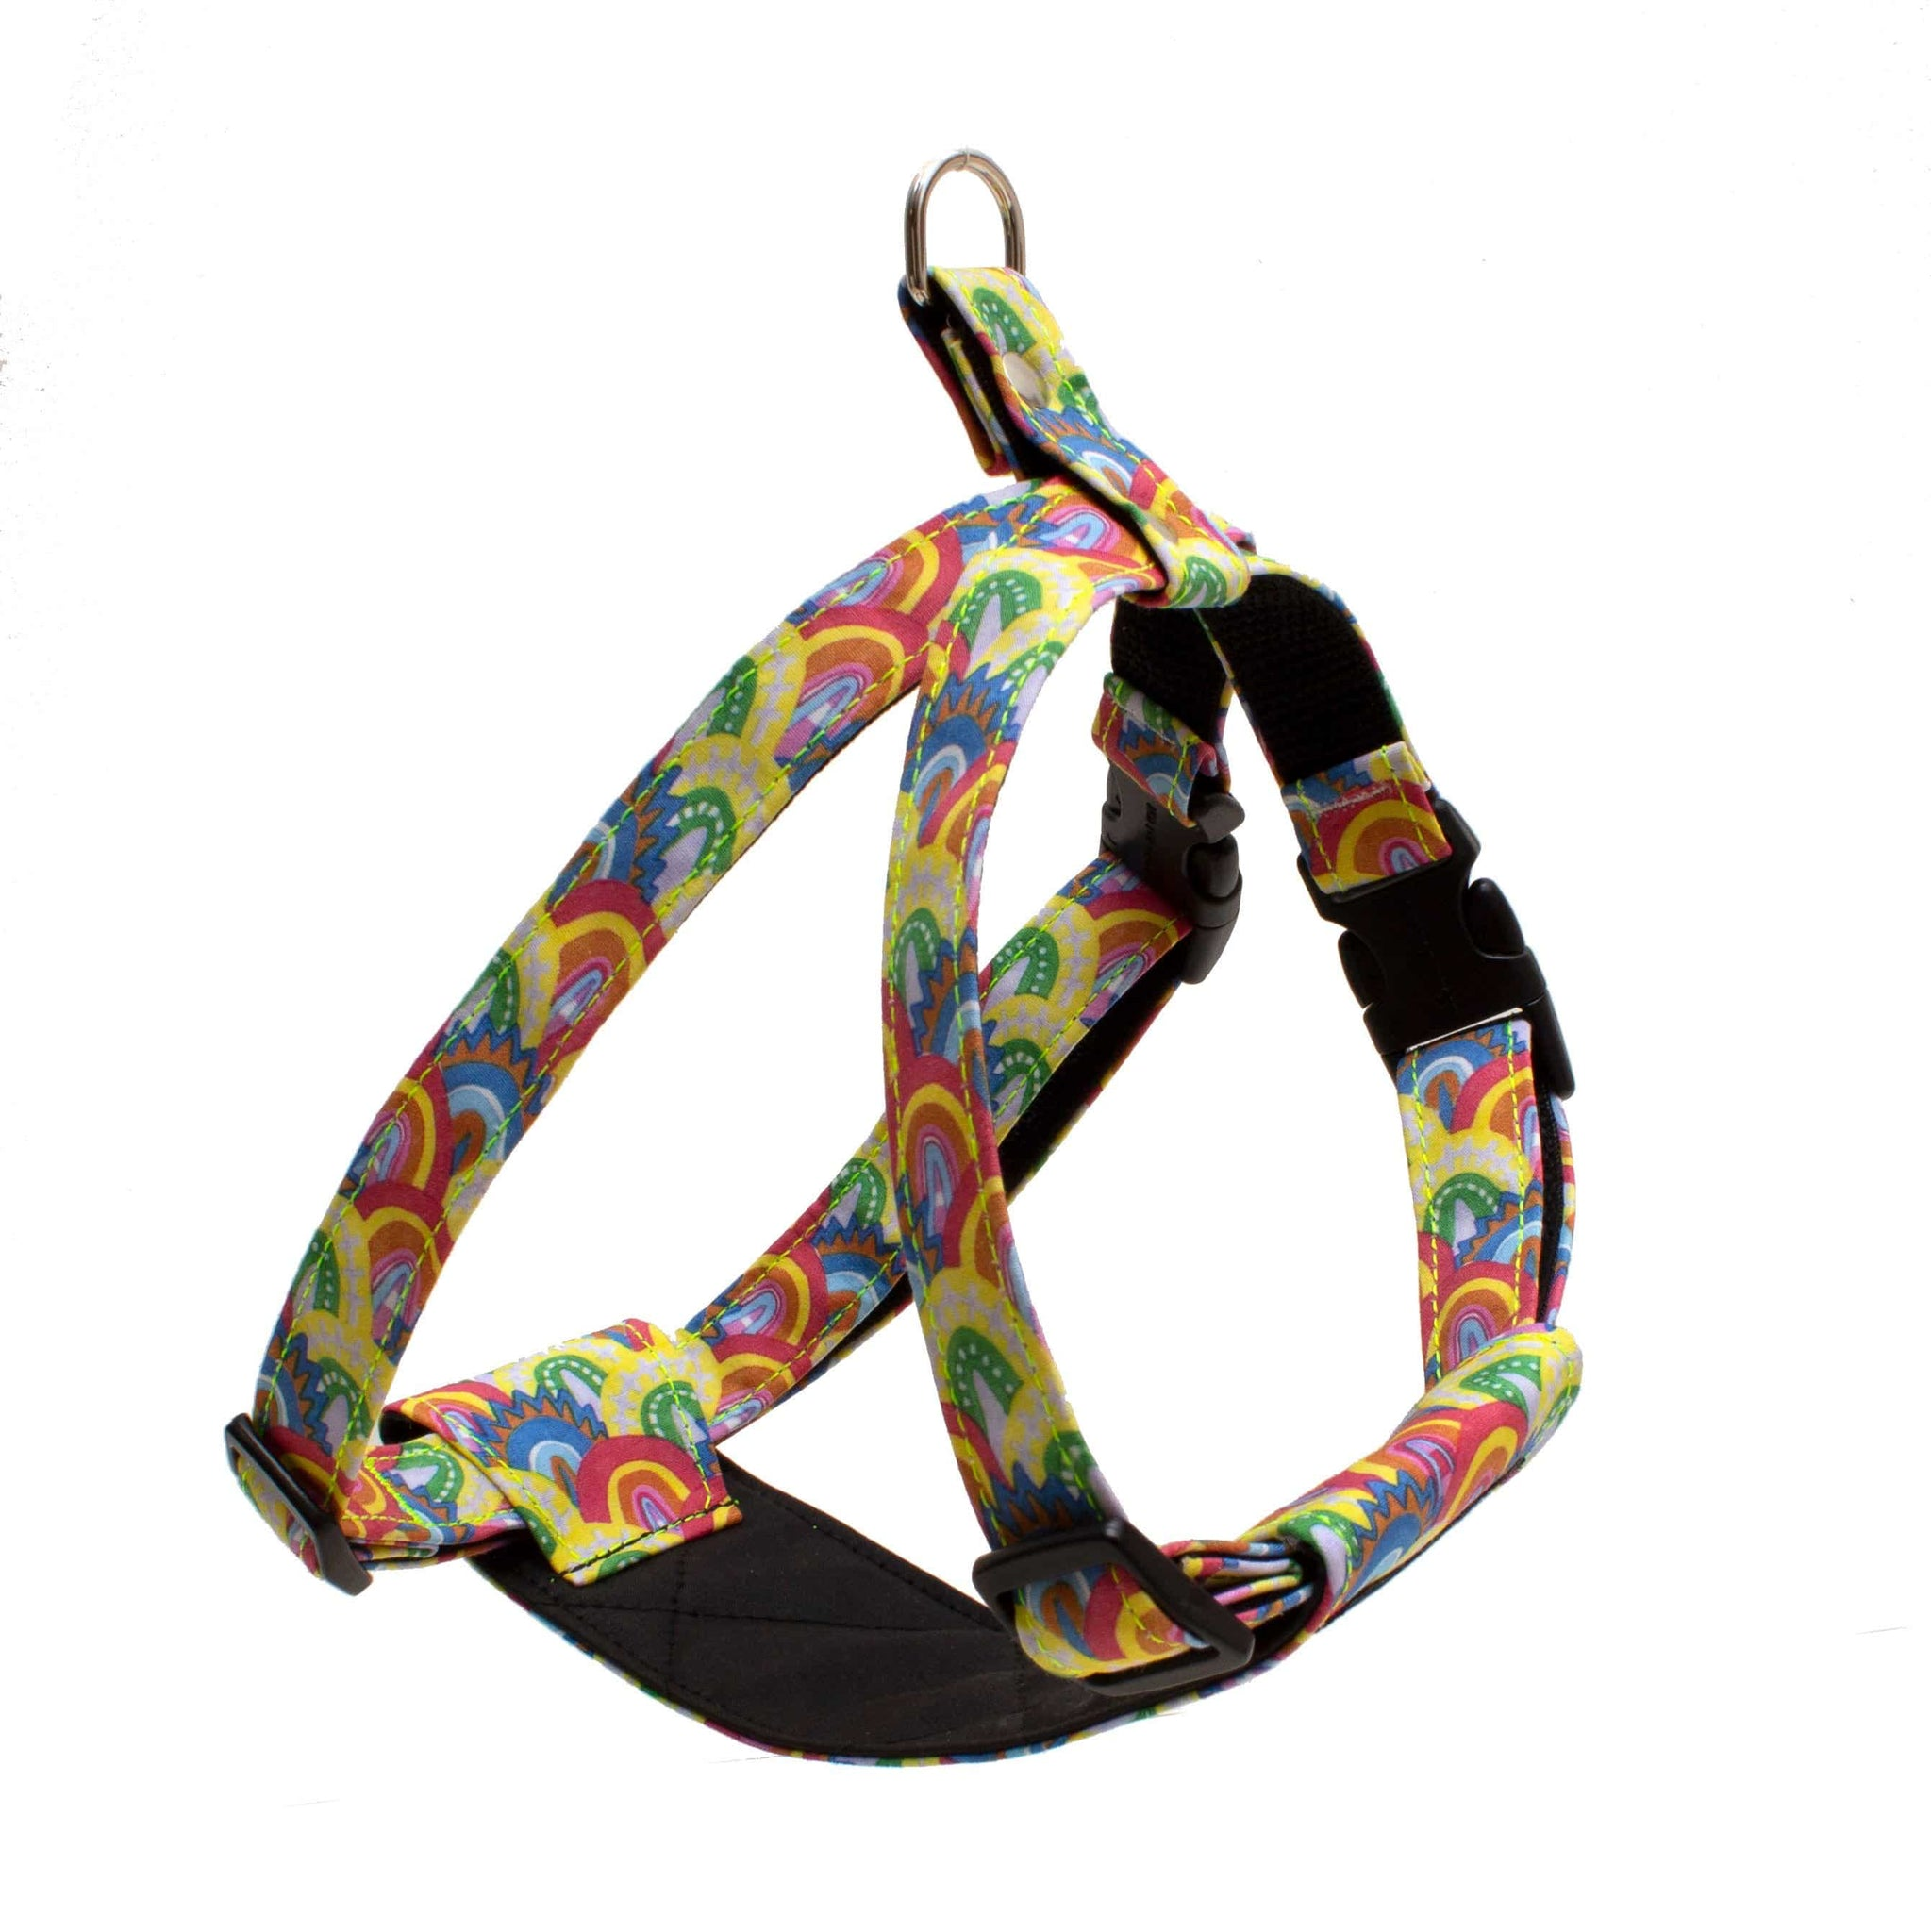 Over The Rainbow Harness - [Holler Brighton]